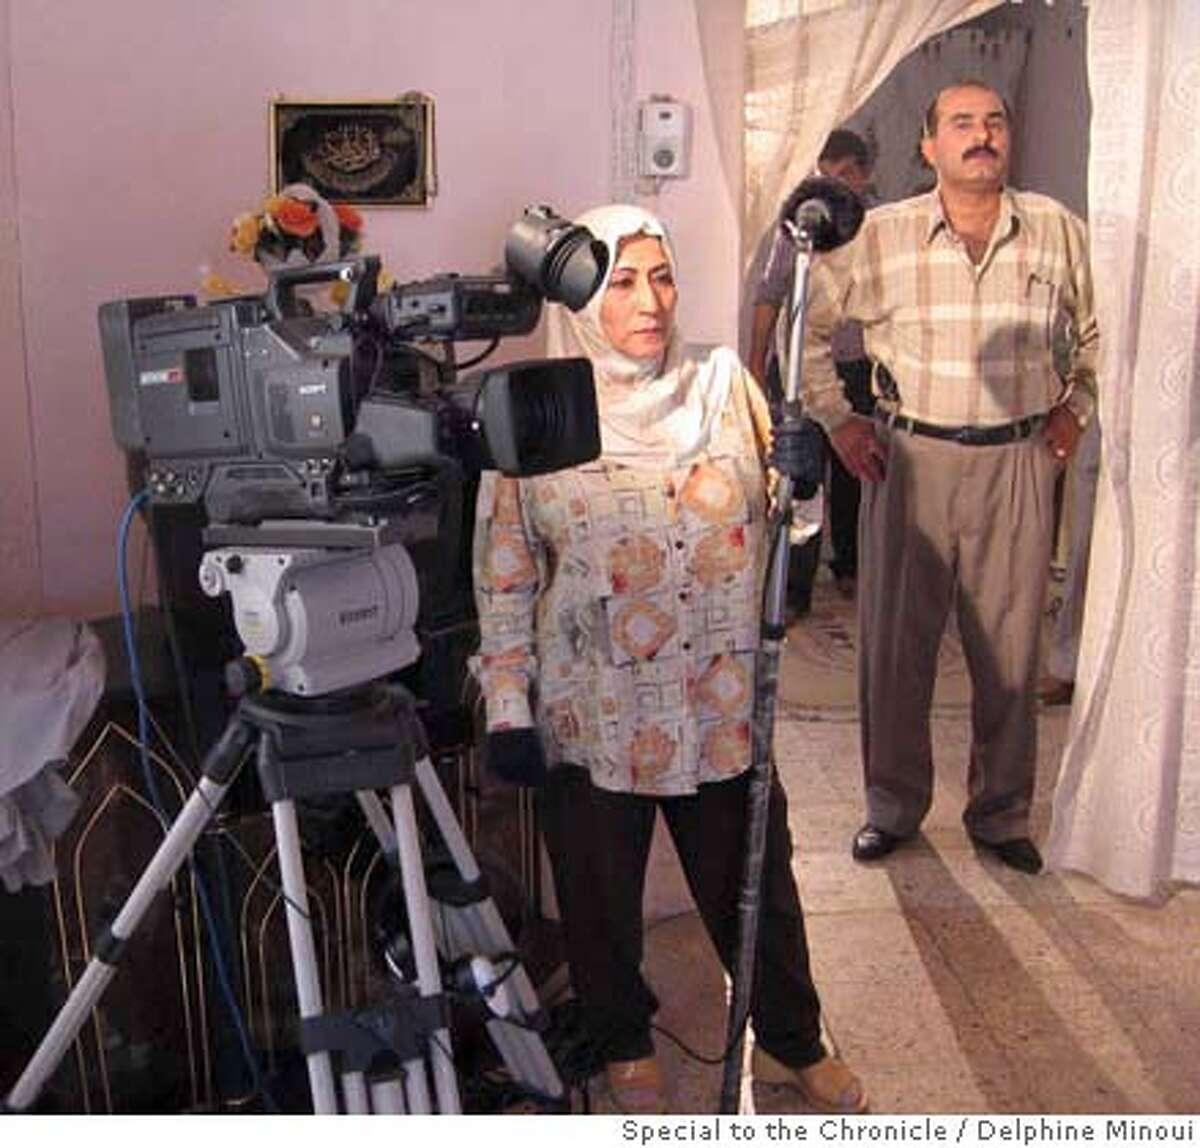 """Iraq-TV.JPG Sound engineer Iman Kassem, right, on duty on the set of """"The End,"""" a new show produced by Iraq's new al-Sharqiya satellite television network as actor Diadin Sami walks through the set. DELPHINE MINOUI /Special To The Chronicle Delphine Minoui"""